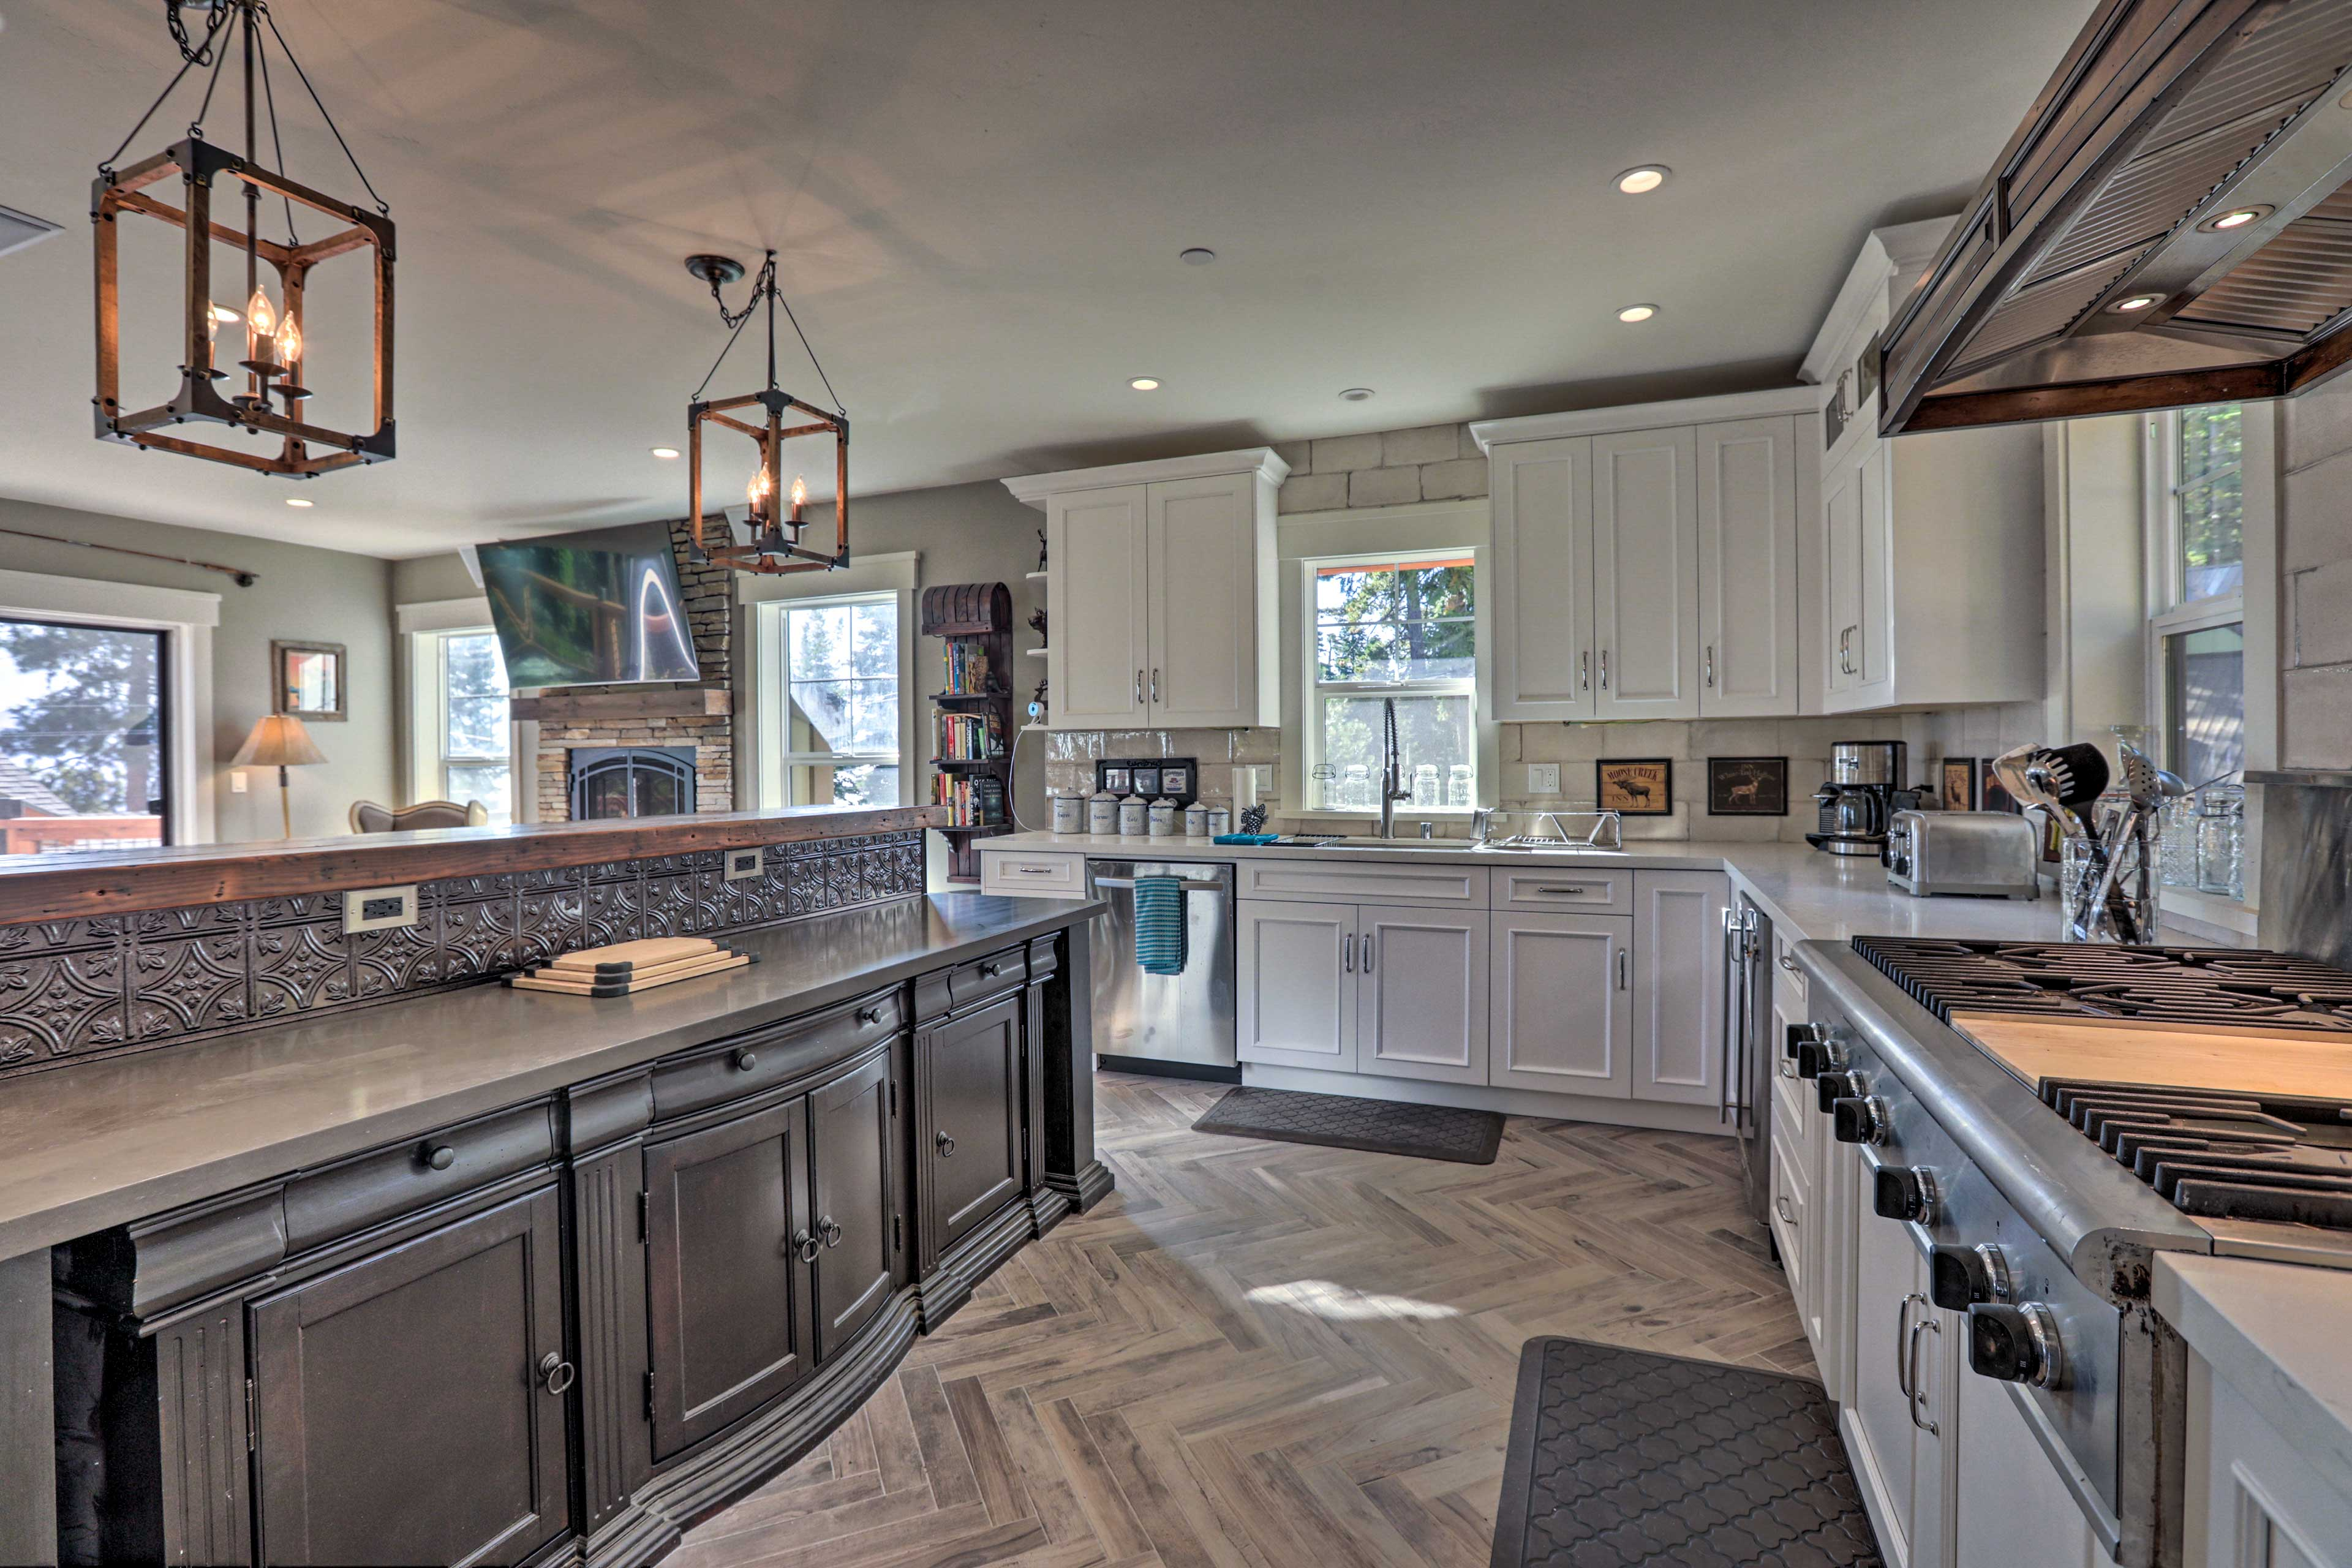 The gourmet kitchen is fully equipped and boasts ample counter space.